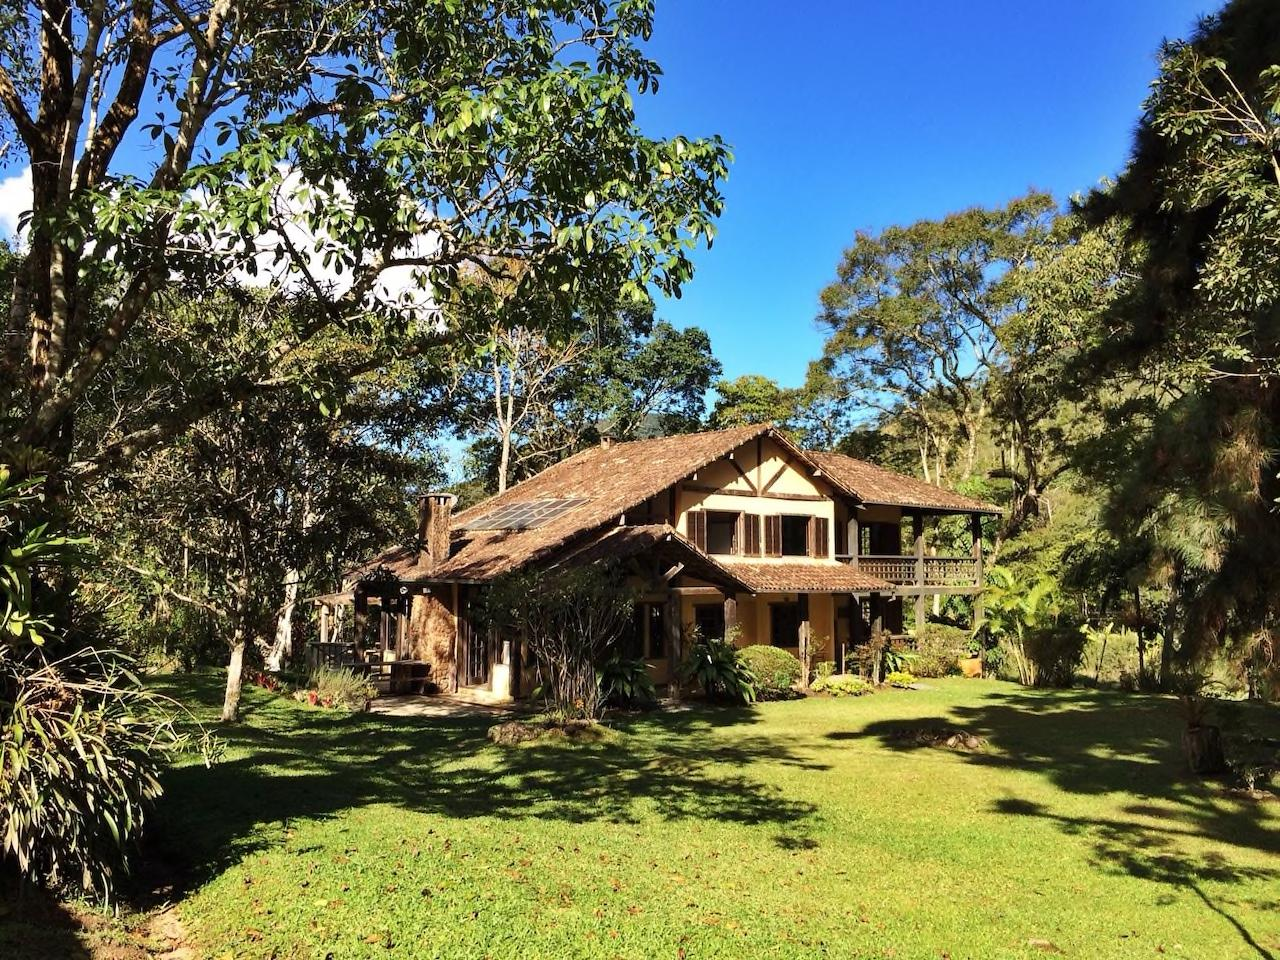 <p>Tucked in the heart of the Atlantic Rainforest in Nova Friburgo, Brazil is a rustic lodge, which can be yours for $224 a night. (Airbnb) </p>